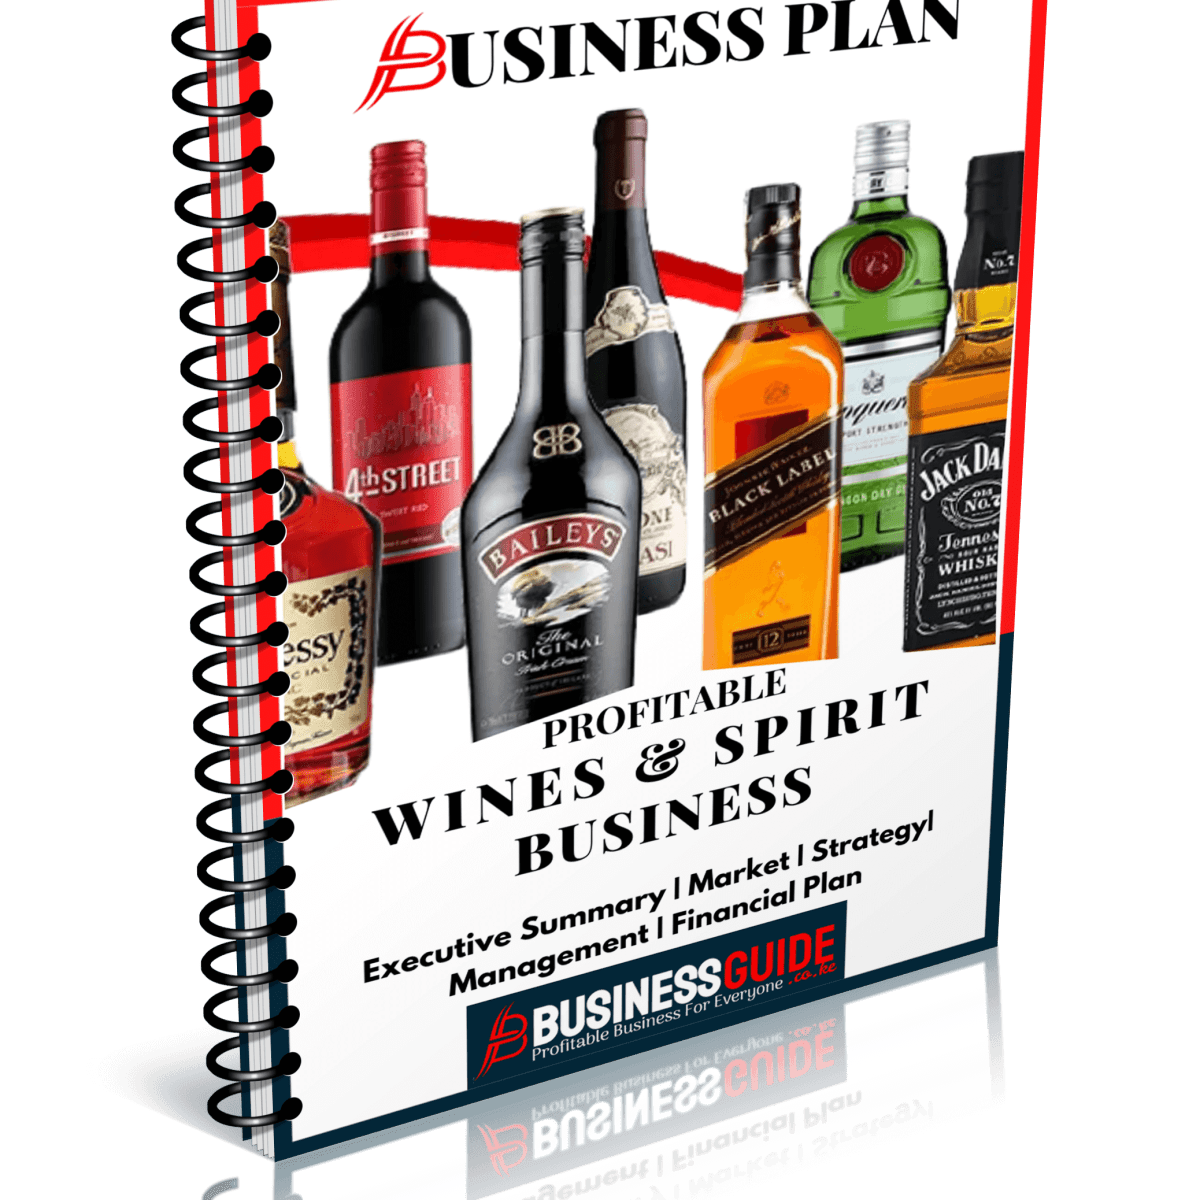 wines and spirits business plan pdf